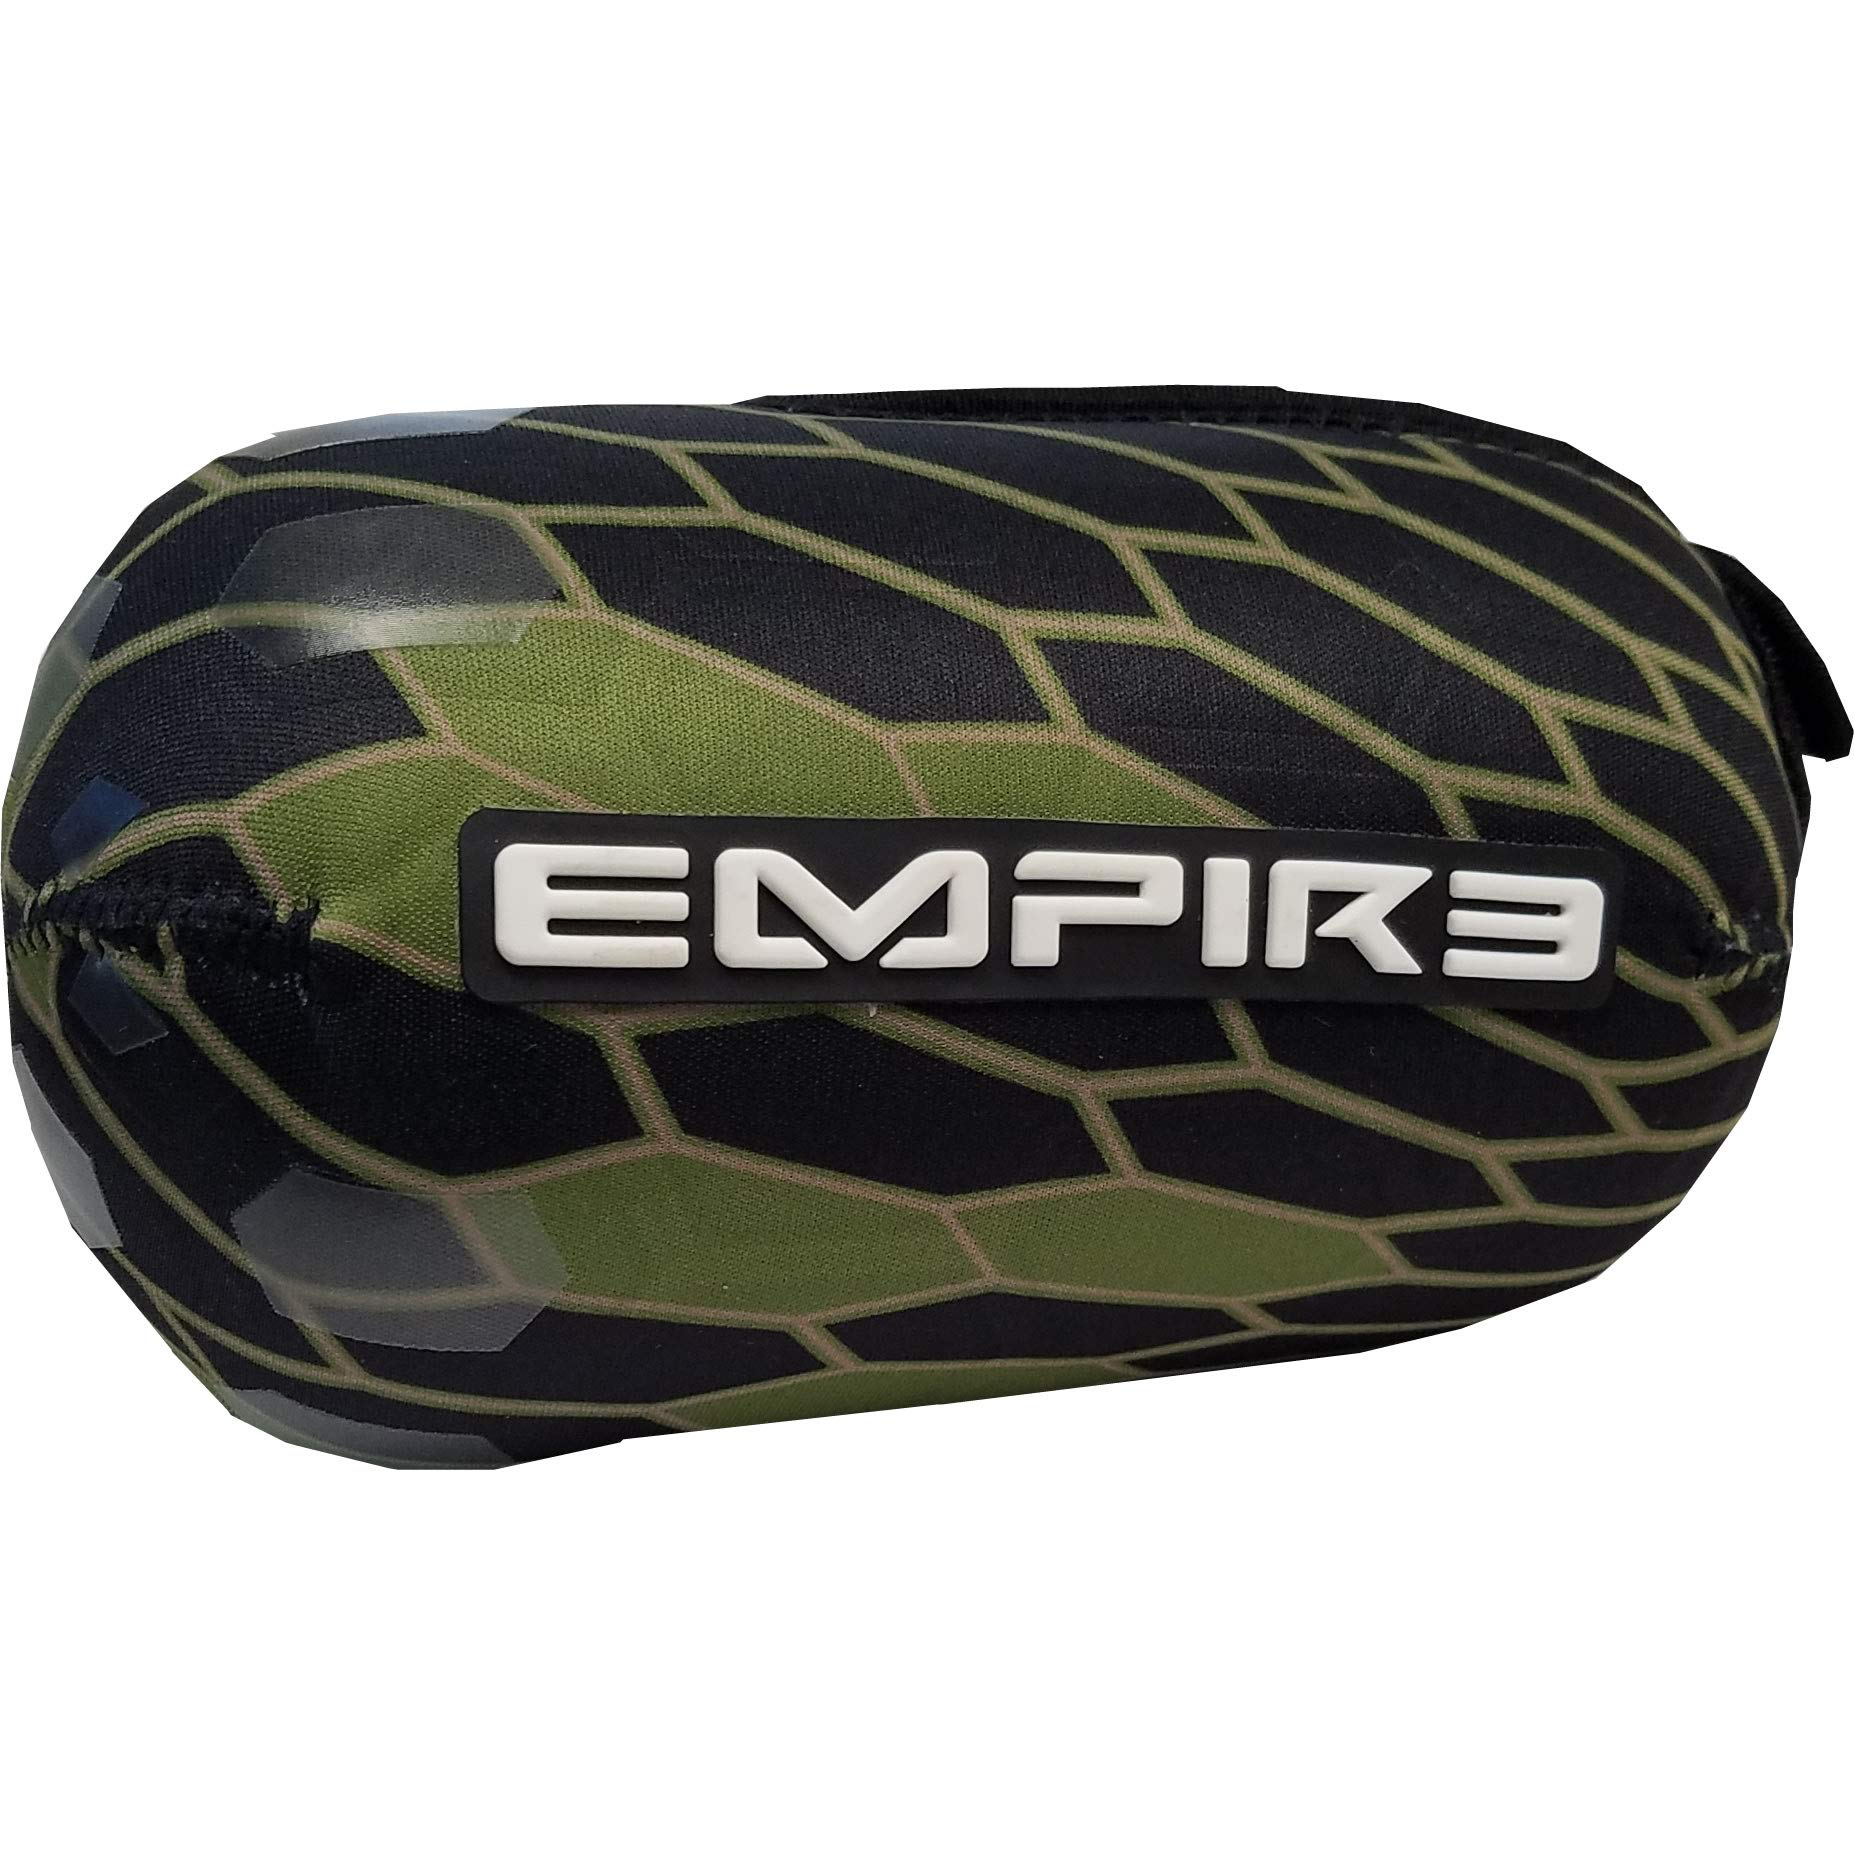 Empire Bottle Glove F9 (68/70ci, Green/Black) by Empire